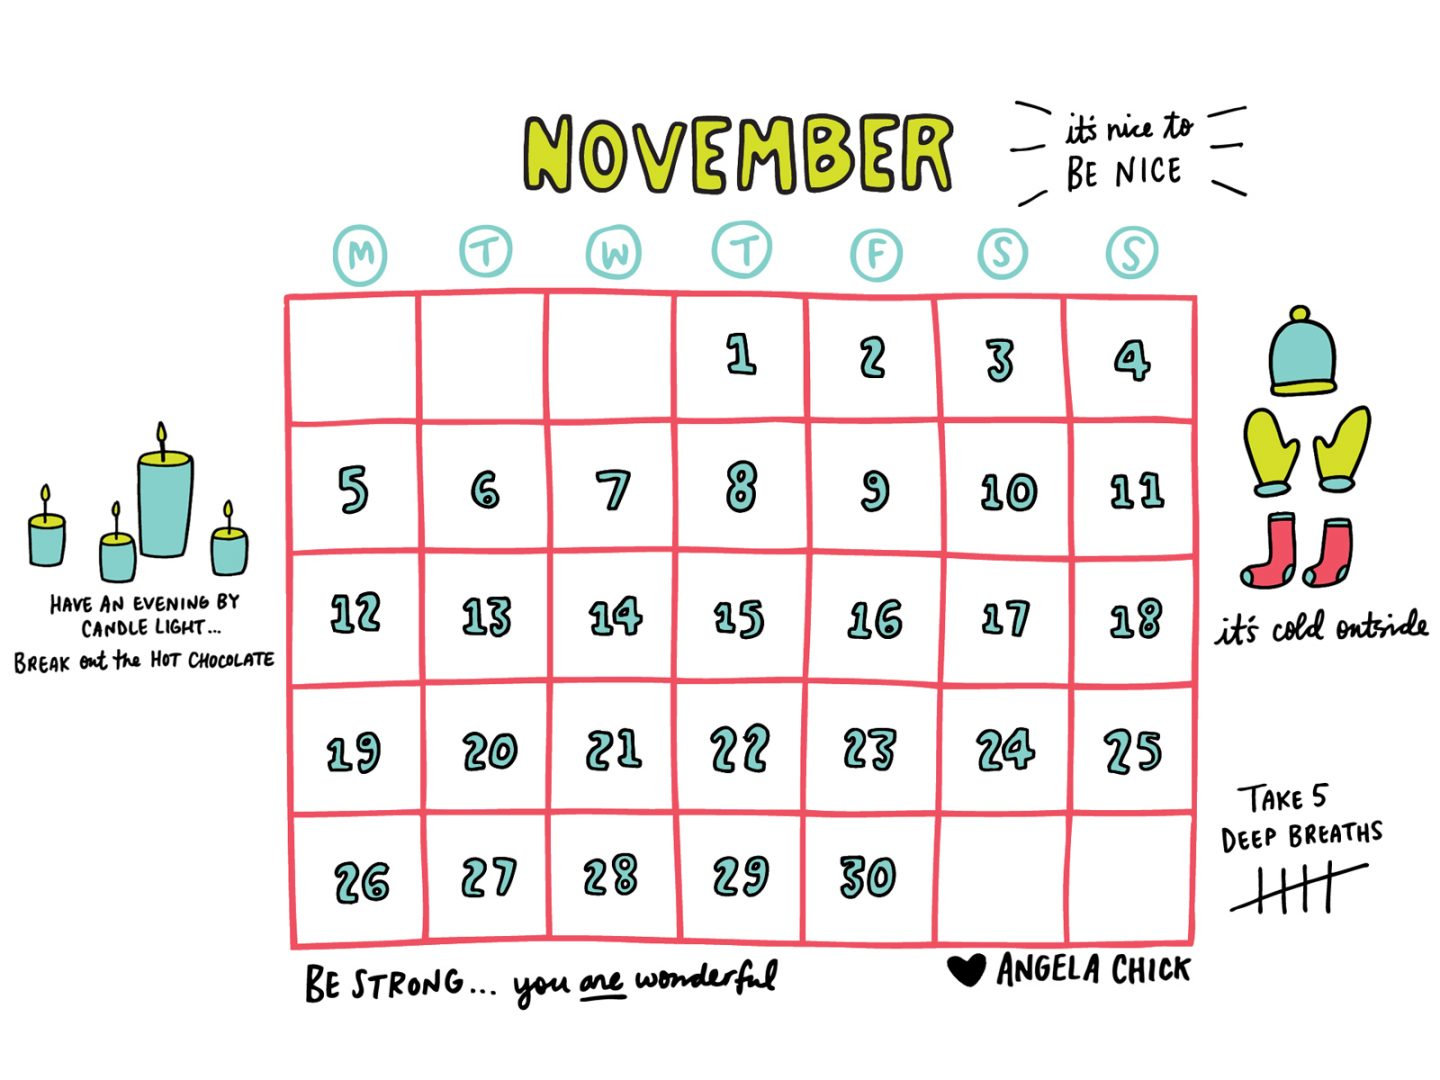 November 2018 calendar download by Angela Chick 4-3